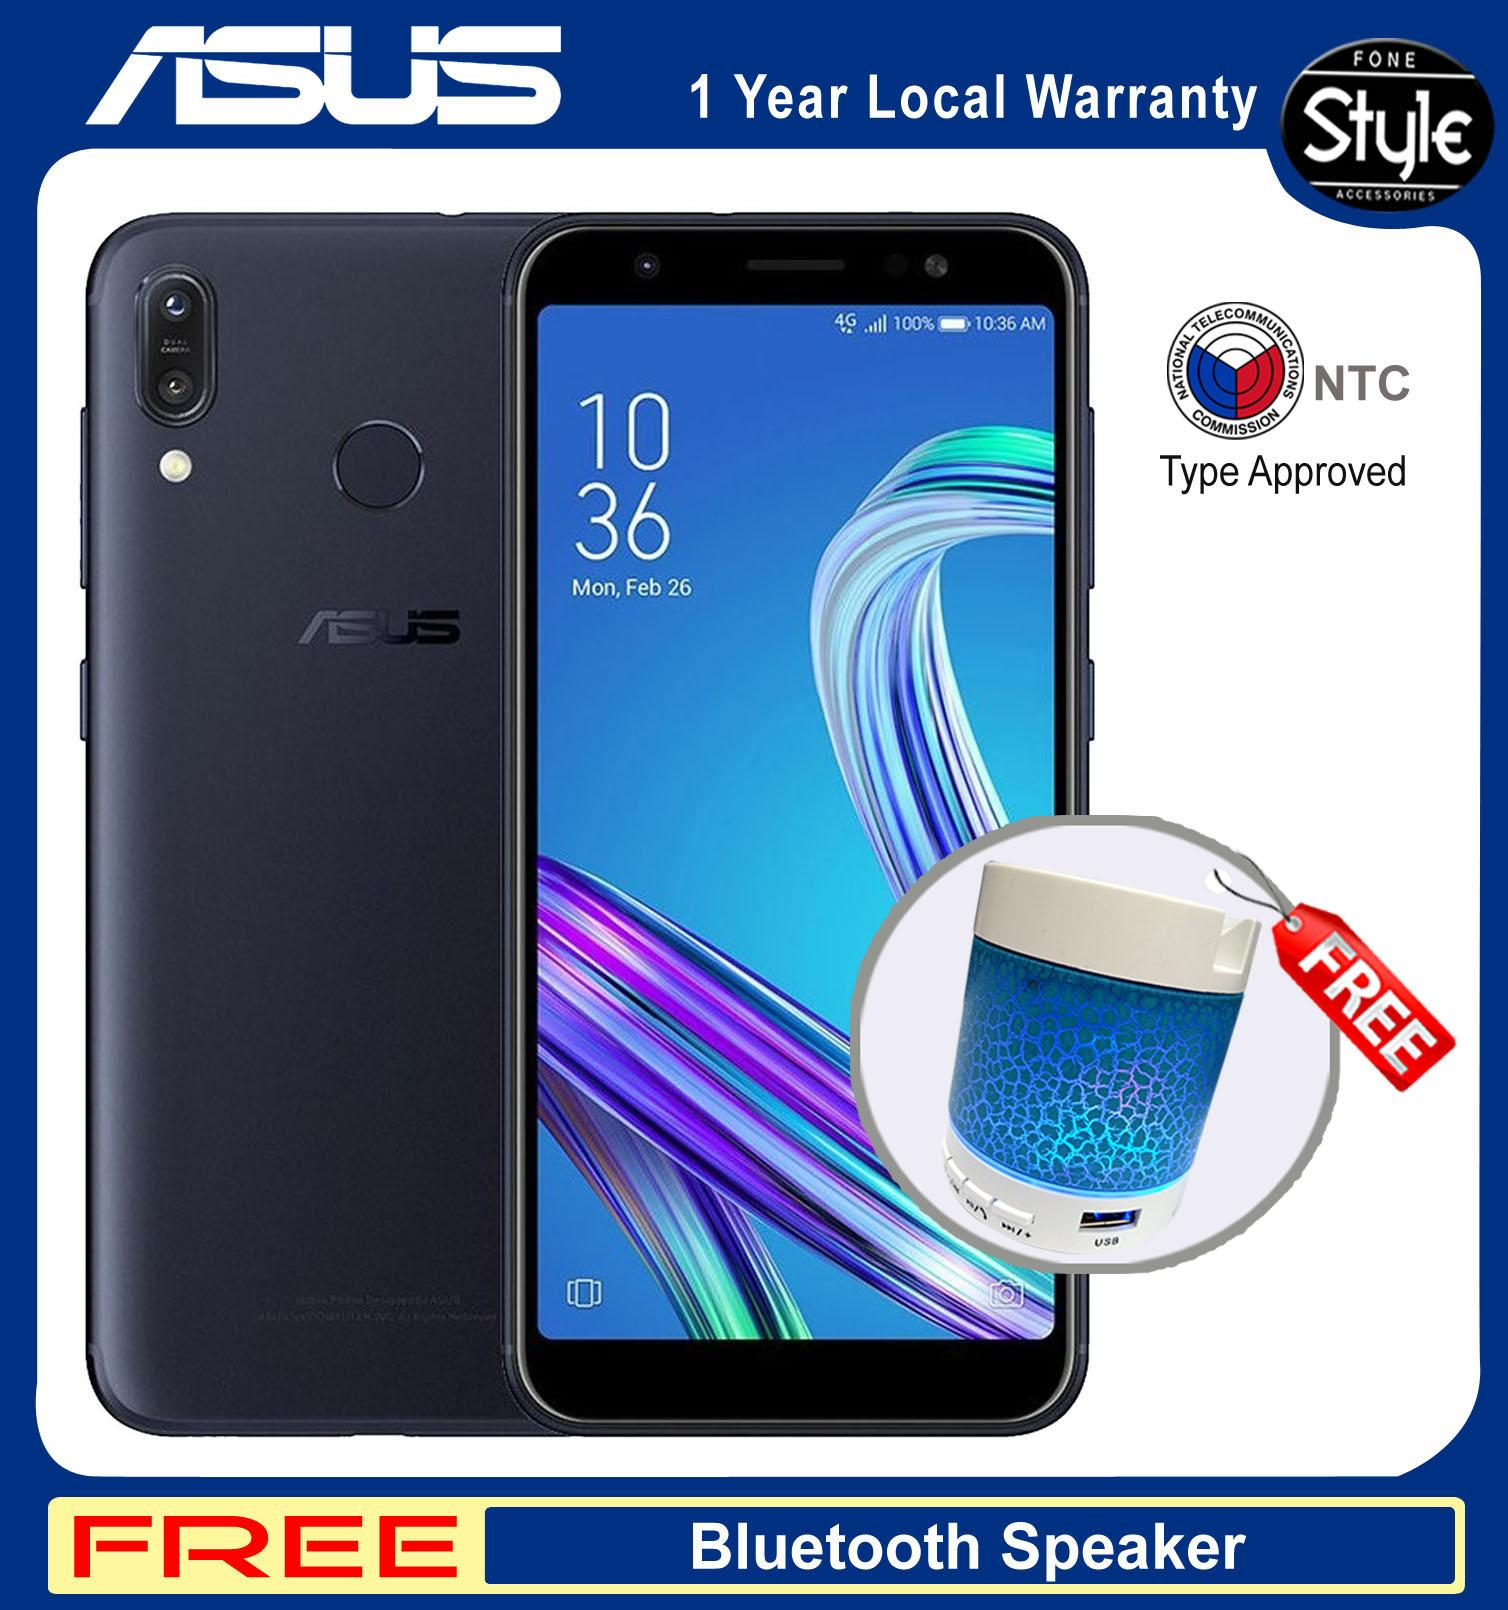 Buy Sell Cheapest Asus X553ma Lcd Best Quality Product Deals Zenfone 2 Laser Ze601kl Smartphone 3 32gb Free Zen Flash Max M1 Zb555kl 55